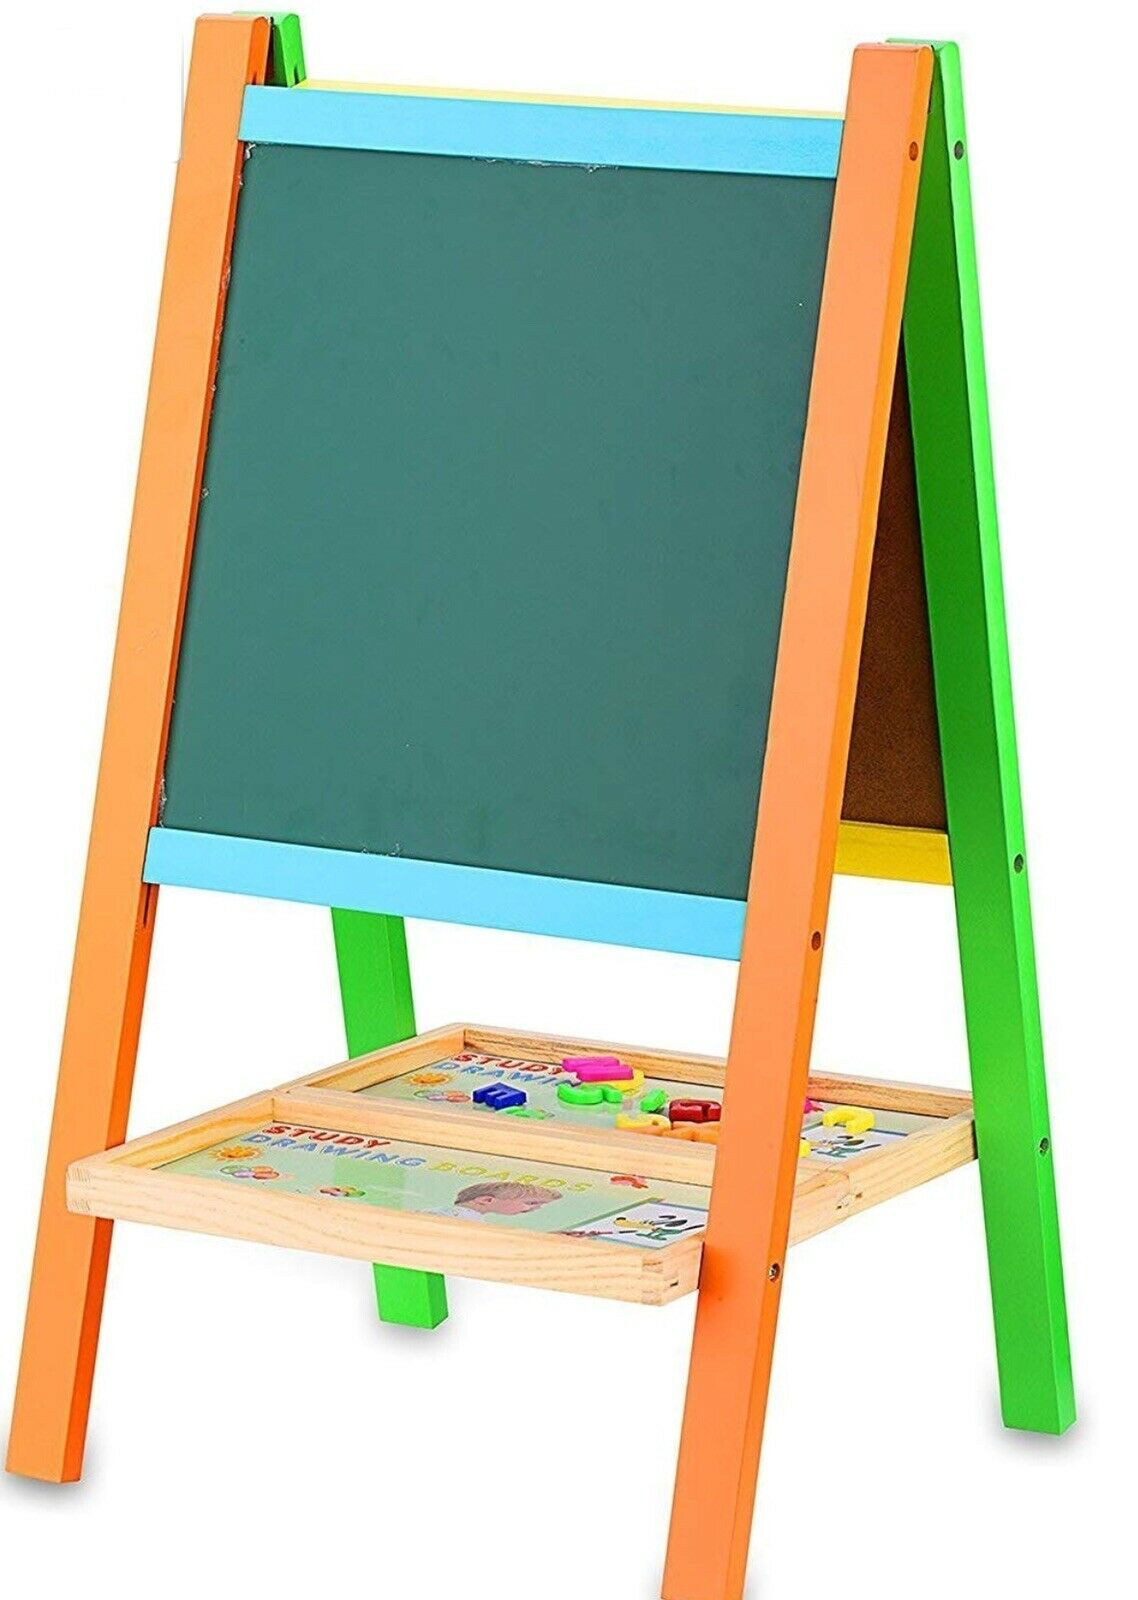 BATTOP Deluxe Two-Sided Two-Sided Two-Sided Wooden Art Easel Multifunctional Drawing Board Education f8a681